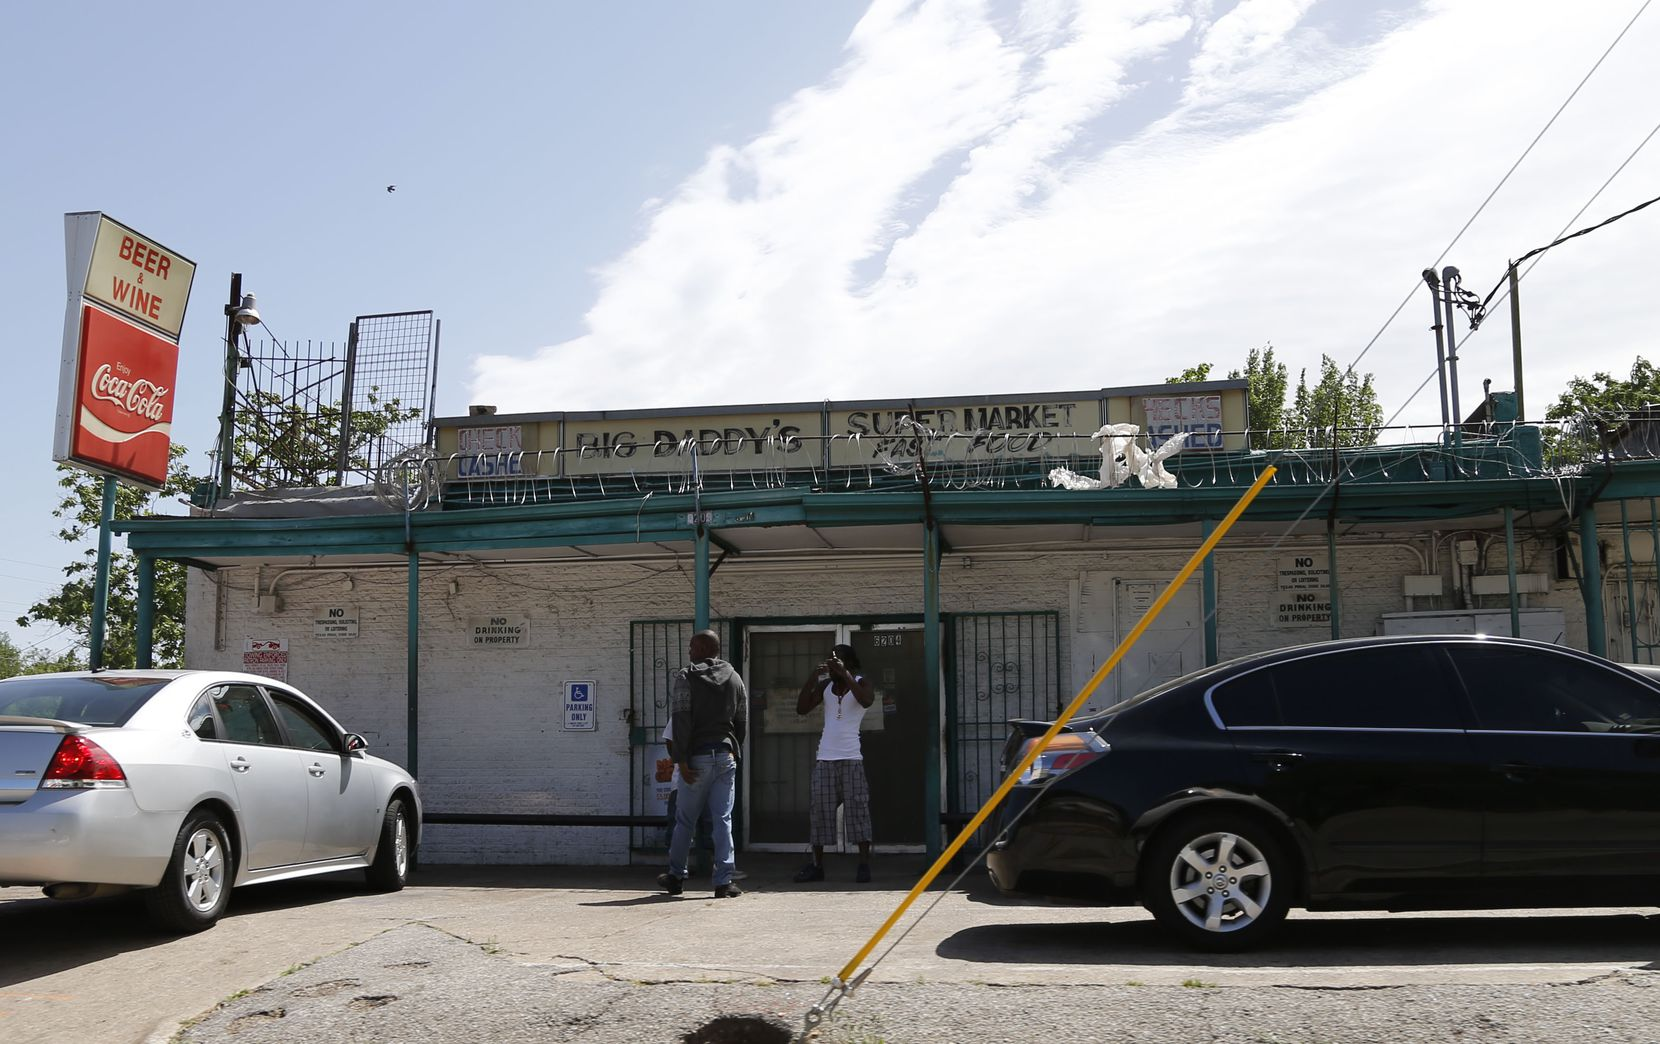 One of Hailu Ejigu's businesses, Big Daddy's Supermarket and Food at 6204 Bexar Street  in Dallas, Texas on Monday, April 29, 2014. (Vernon Bryant/The Dallas Morning News)